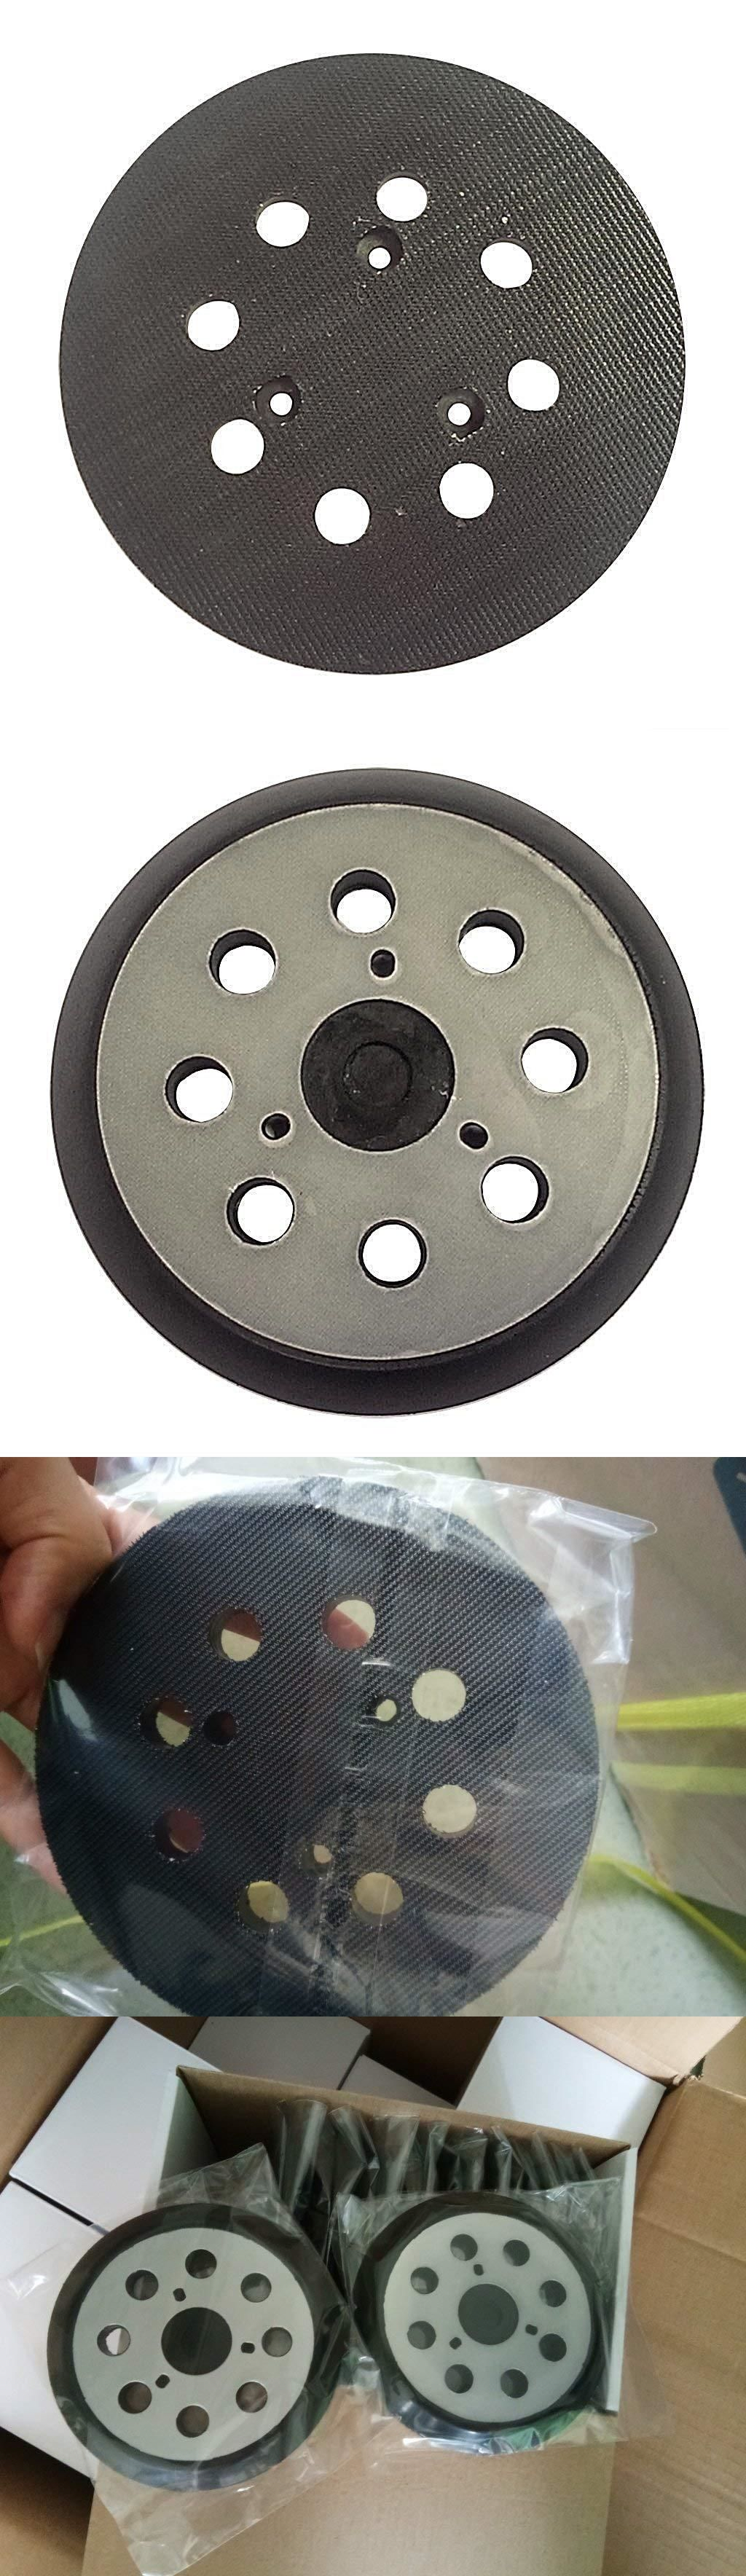 Sanders 42284 Replacement 5 Hook And Loop Disc D A Sander Sanding Pad For Makita Buy It Now Only 15 05 On Ebay Sanders Replacement Makita Sanding Ebay